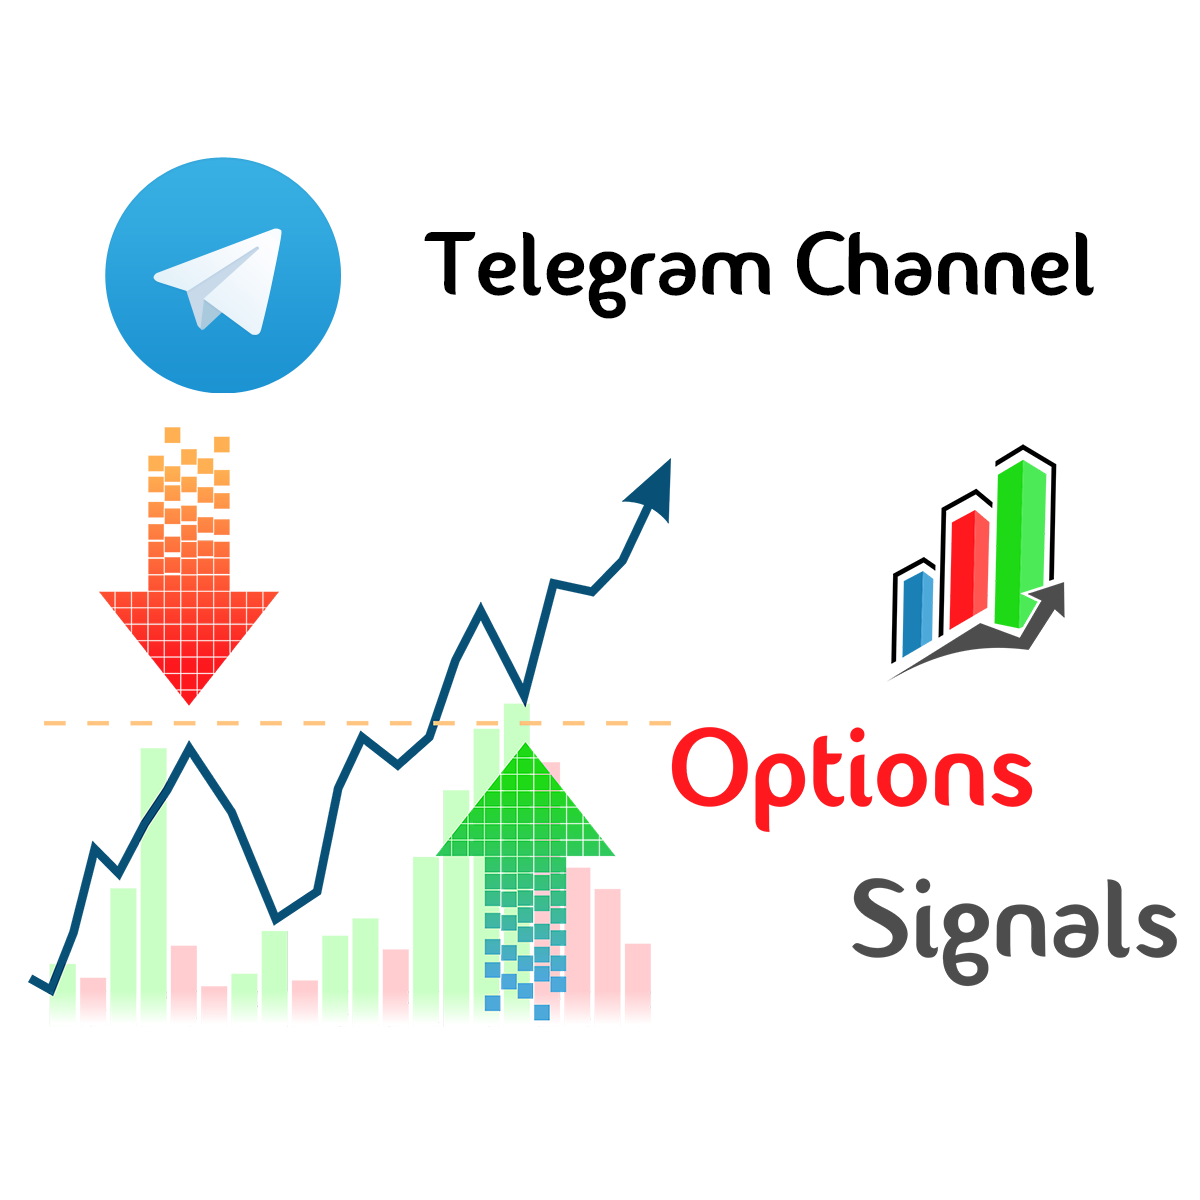 binary options spot signals telegram